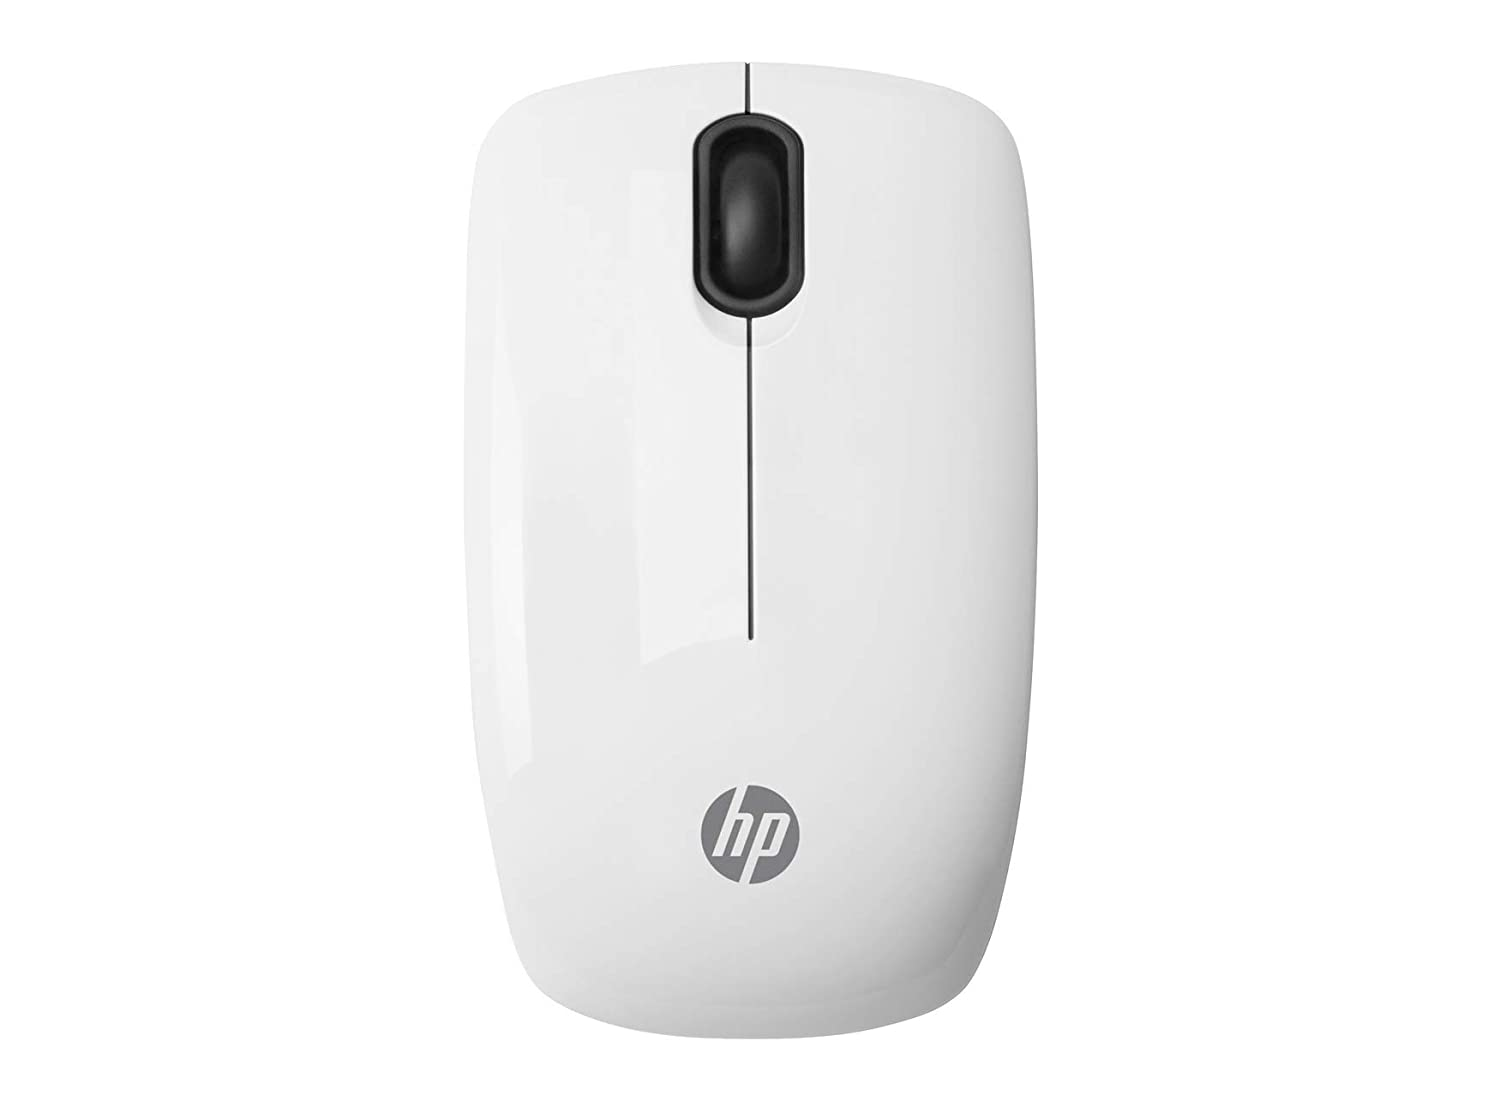 e5755770183 Amazon.in: Buy HP Z3200 Wireless Mouse (White) Online at Low Prices in  India   HP Reviews & Ratings